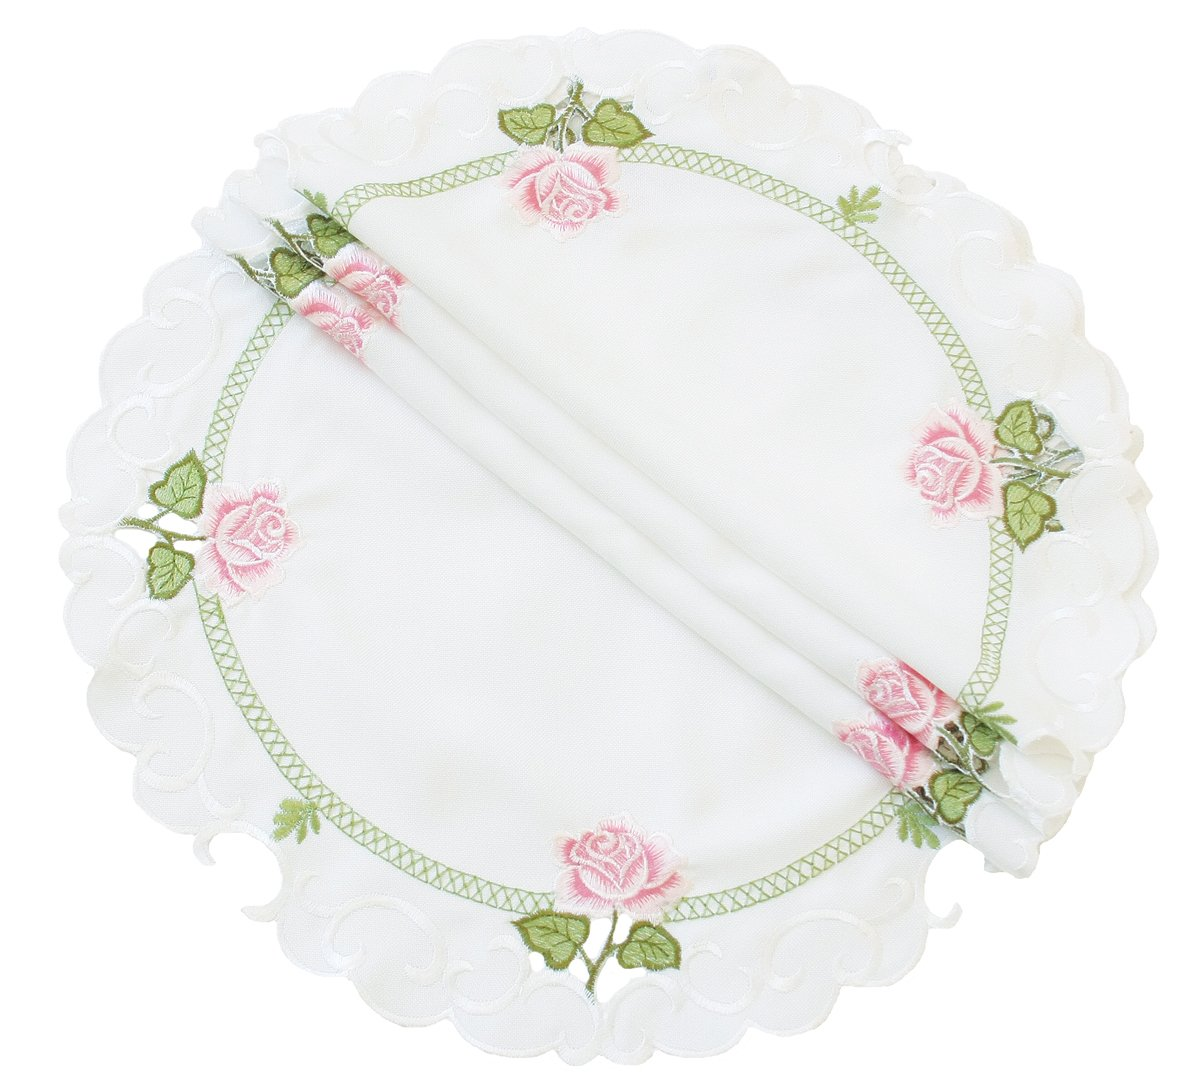 Xia Home Fashions Summer Rose Embroidered Cutwork Spring Doilies, 12-Inch Round, Set of 4 by Xia Home Fashions